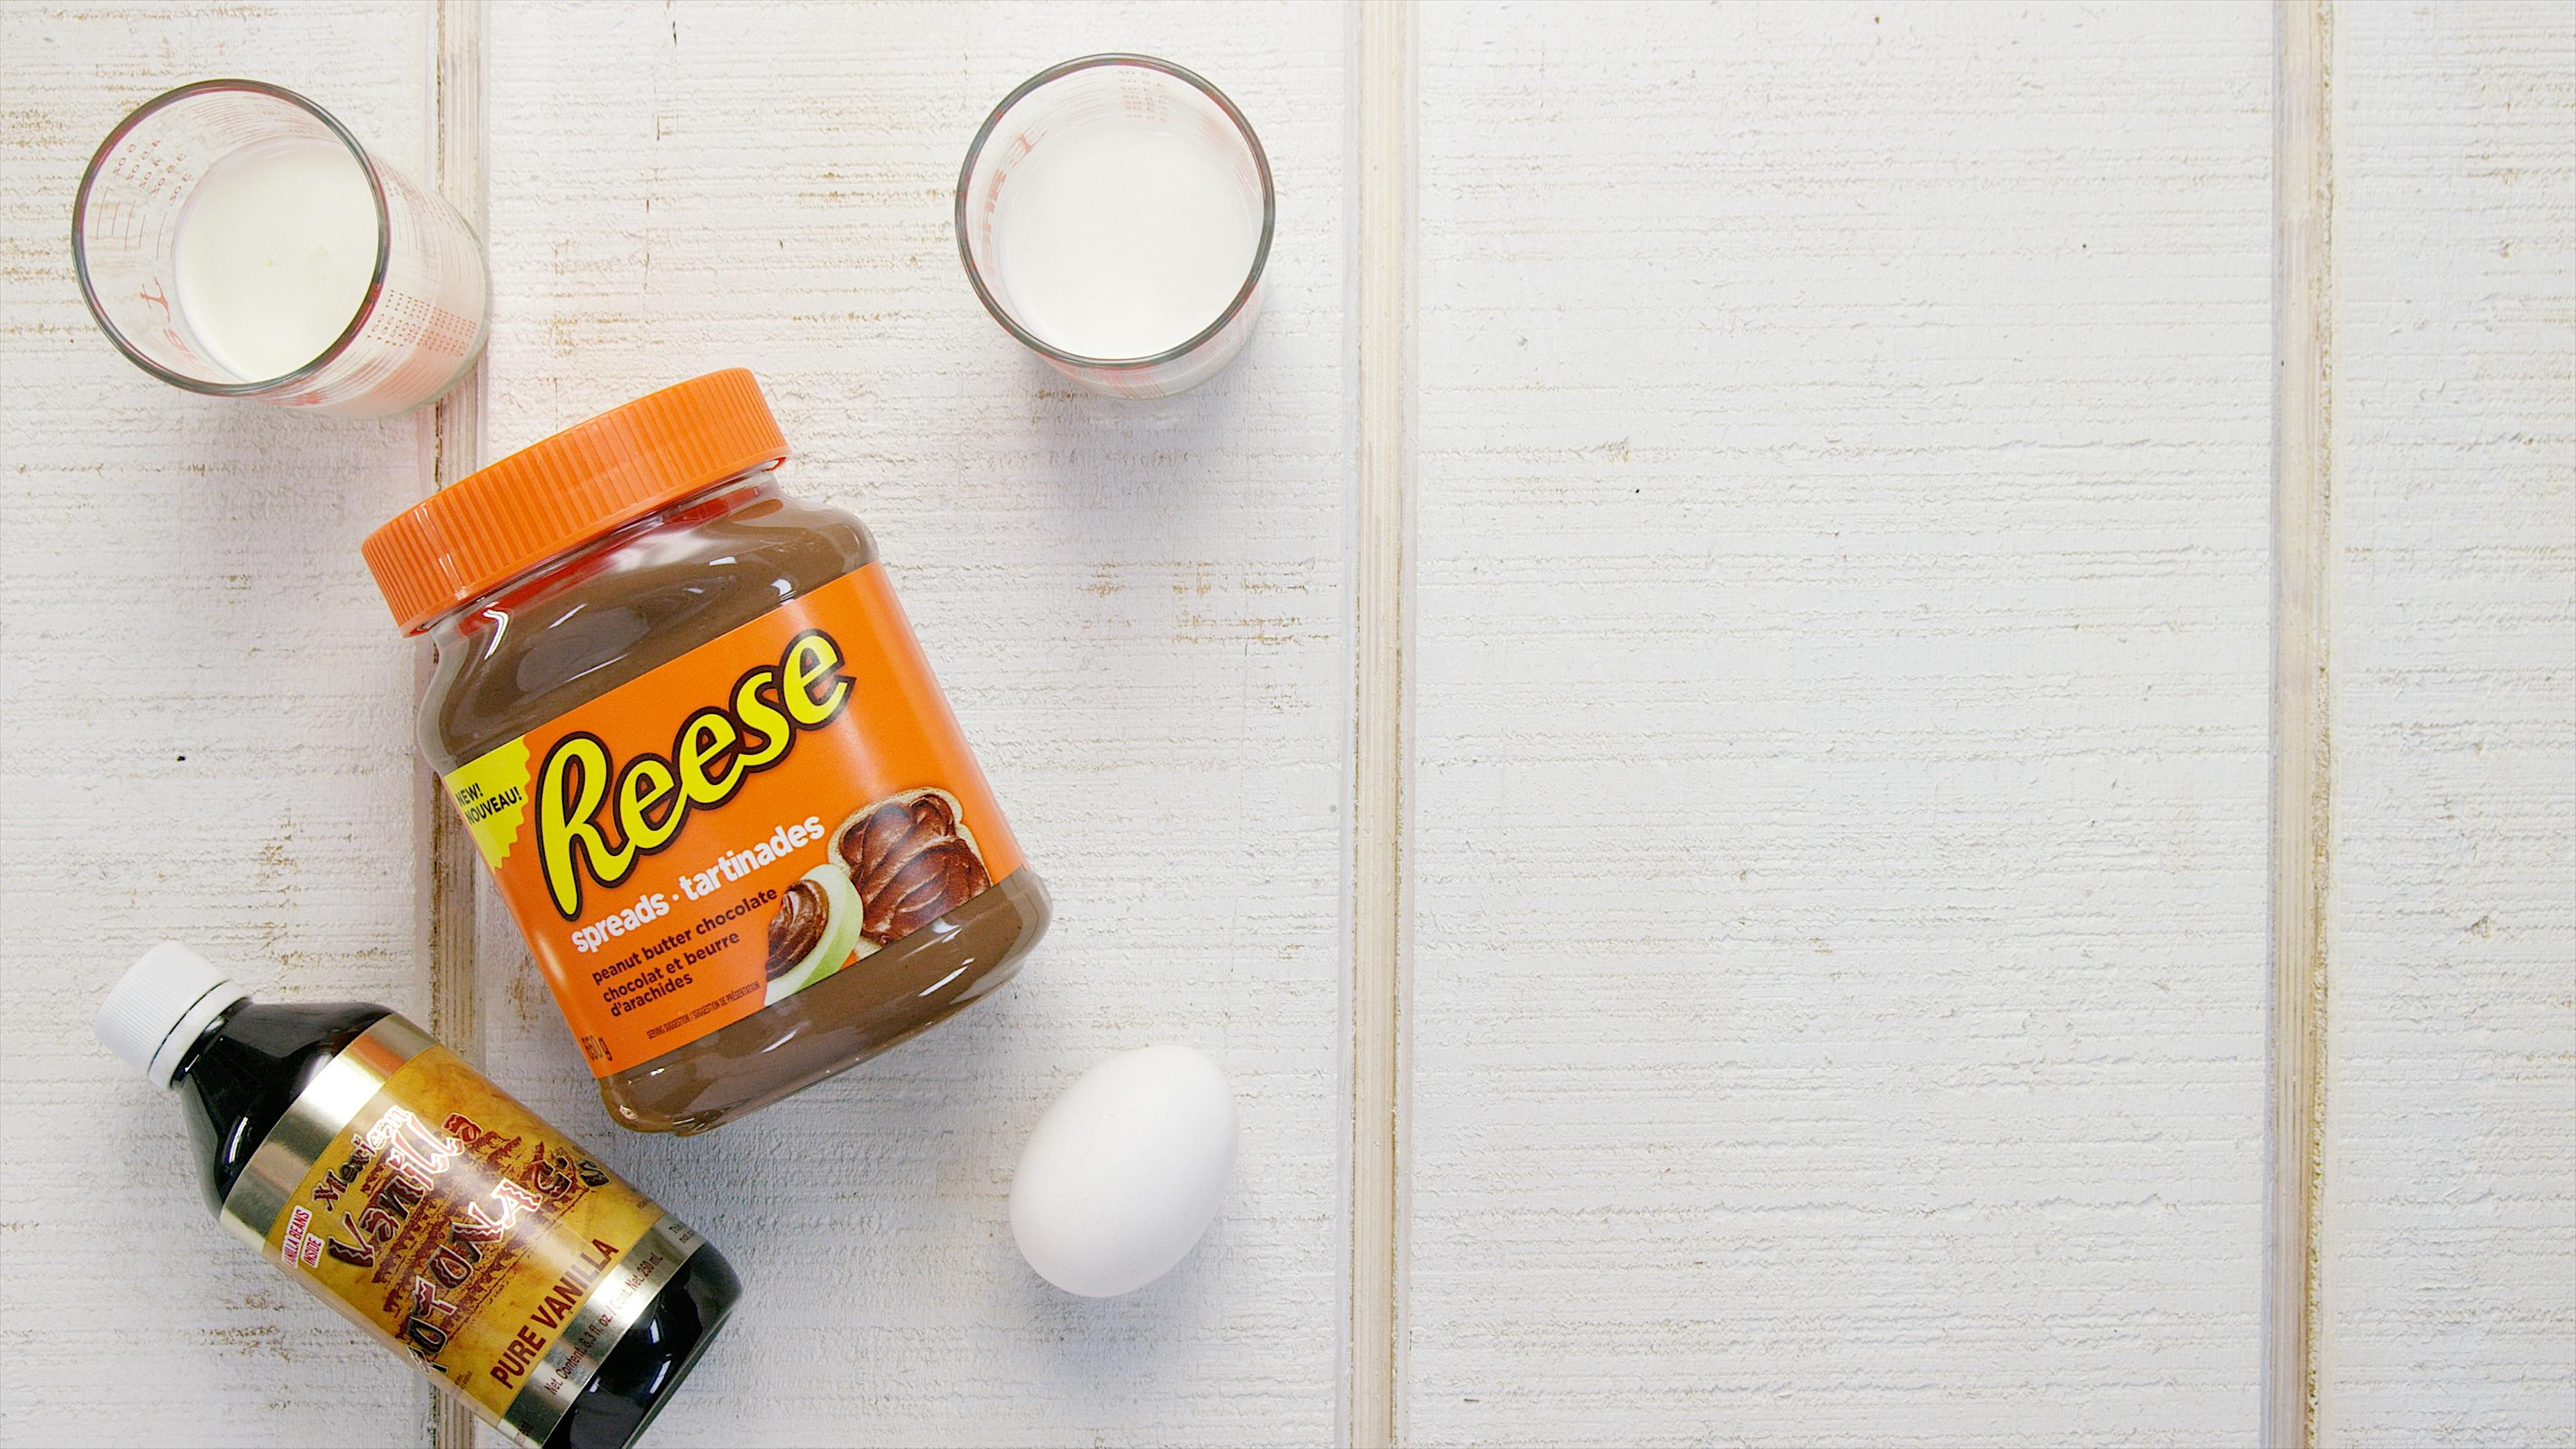 How to Make Reese's Peanut Butter Cup Ice Cream